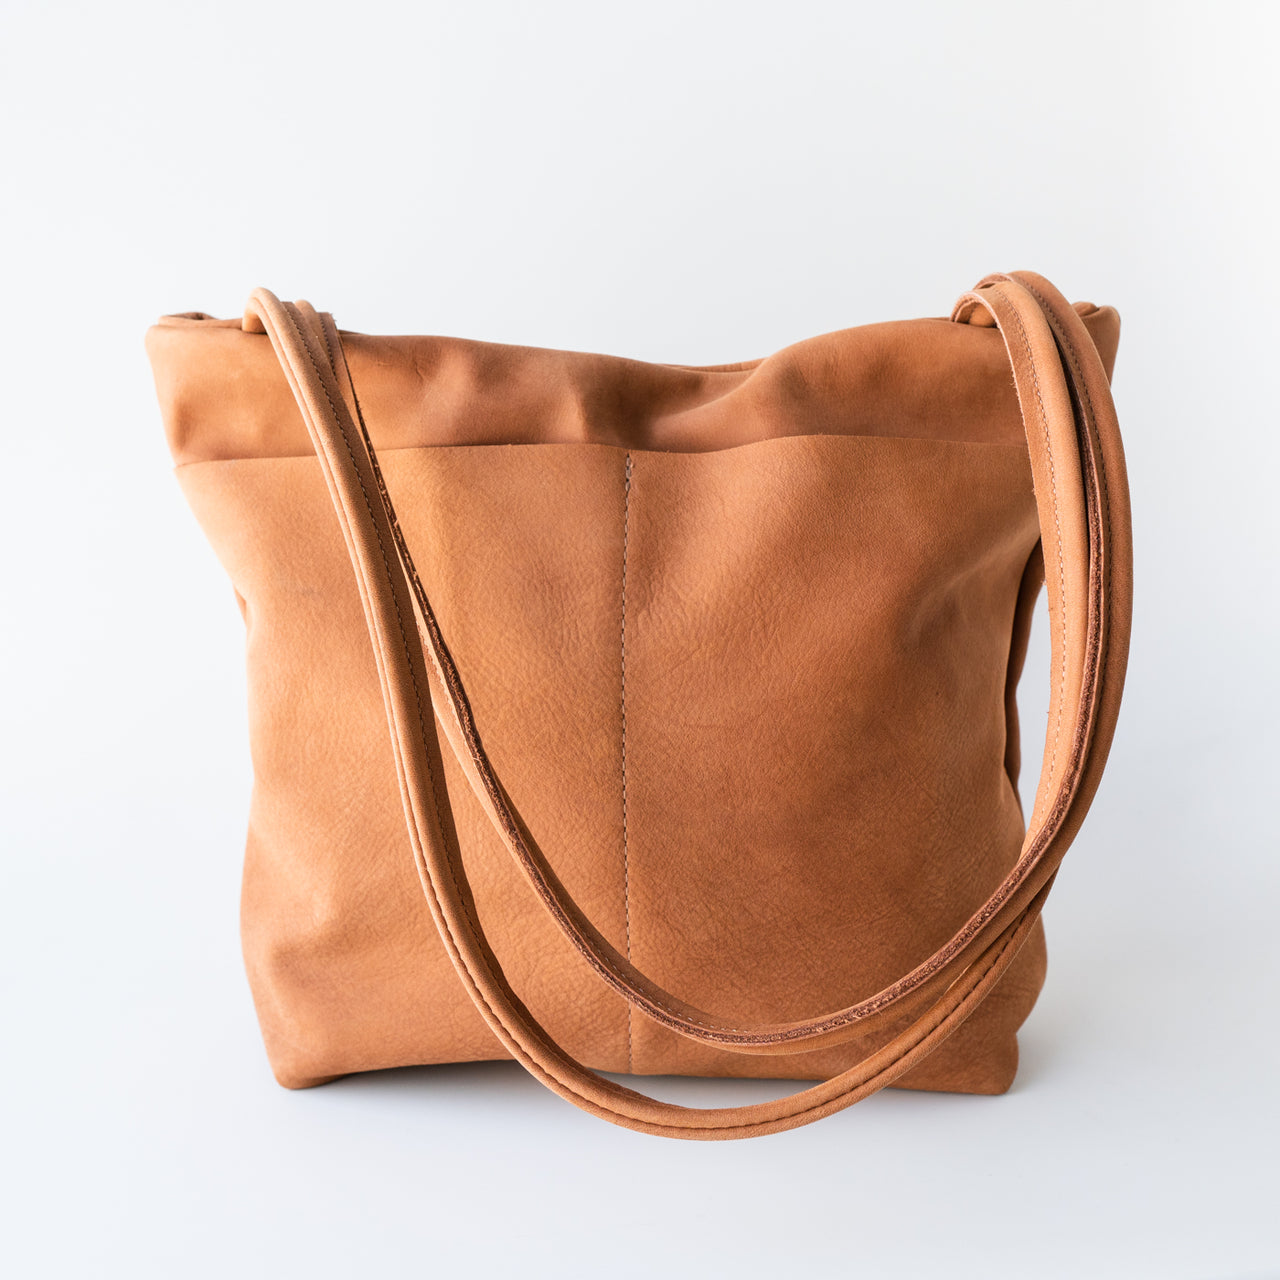 Casey Bag in Matte Tan